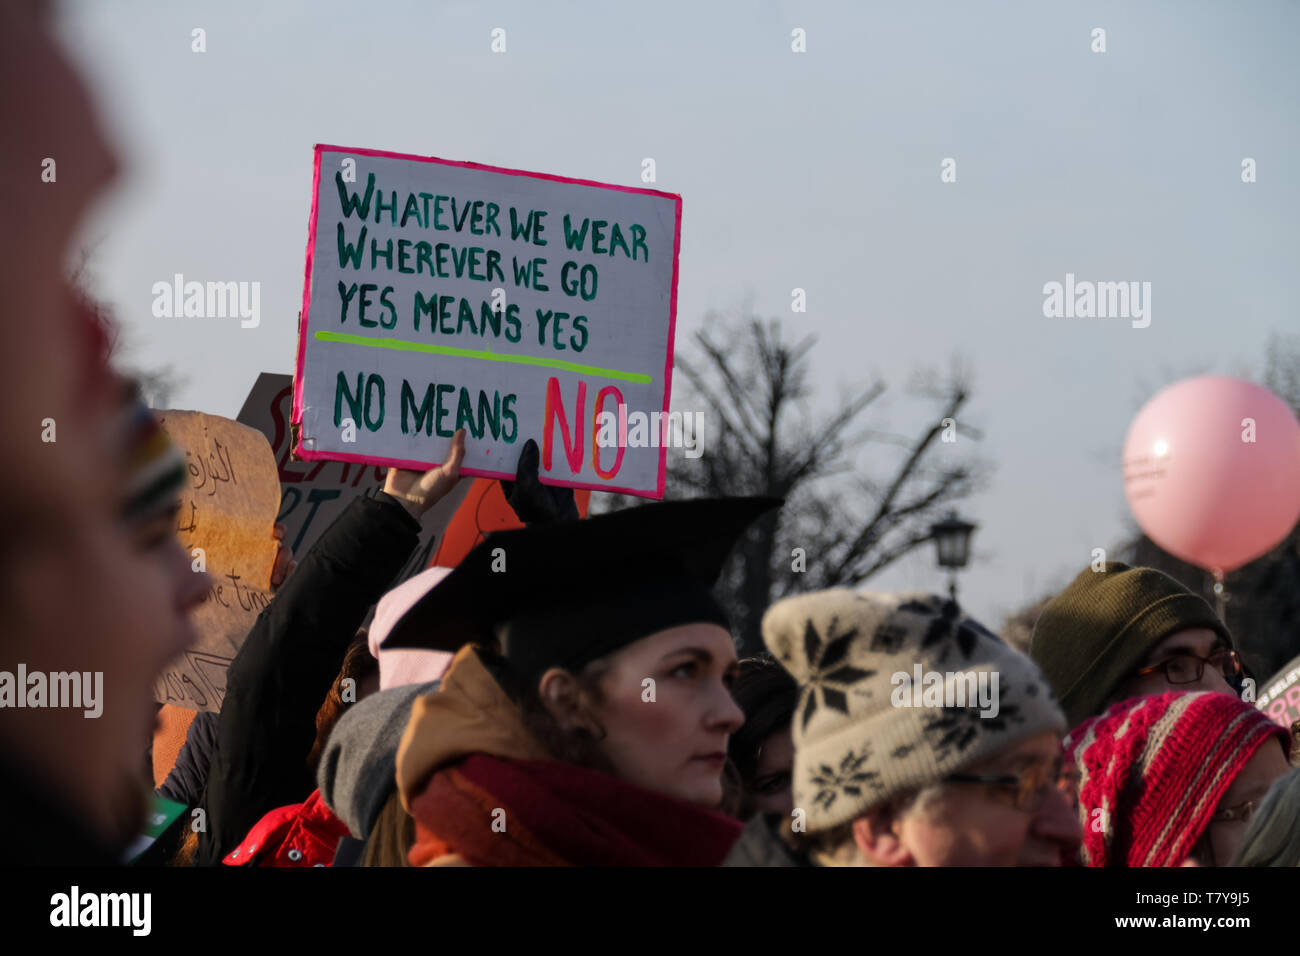 BERLIN, GERMANY - January 19, 2019:  Hundreds of women are protesting for equal rights and opportunities at the annual 'Women's March', a global movem - Stock Image